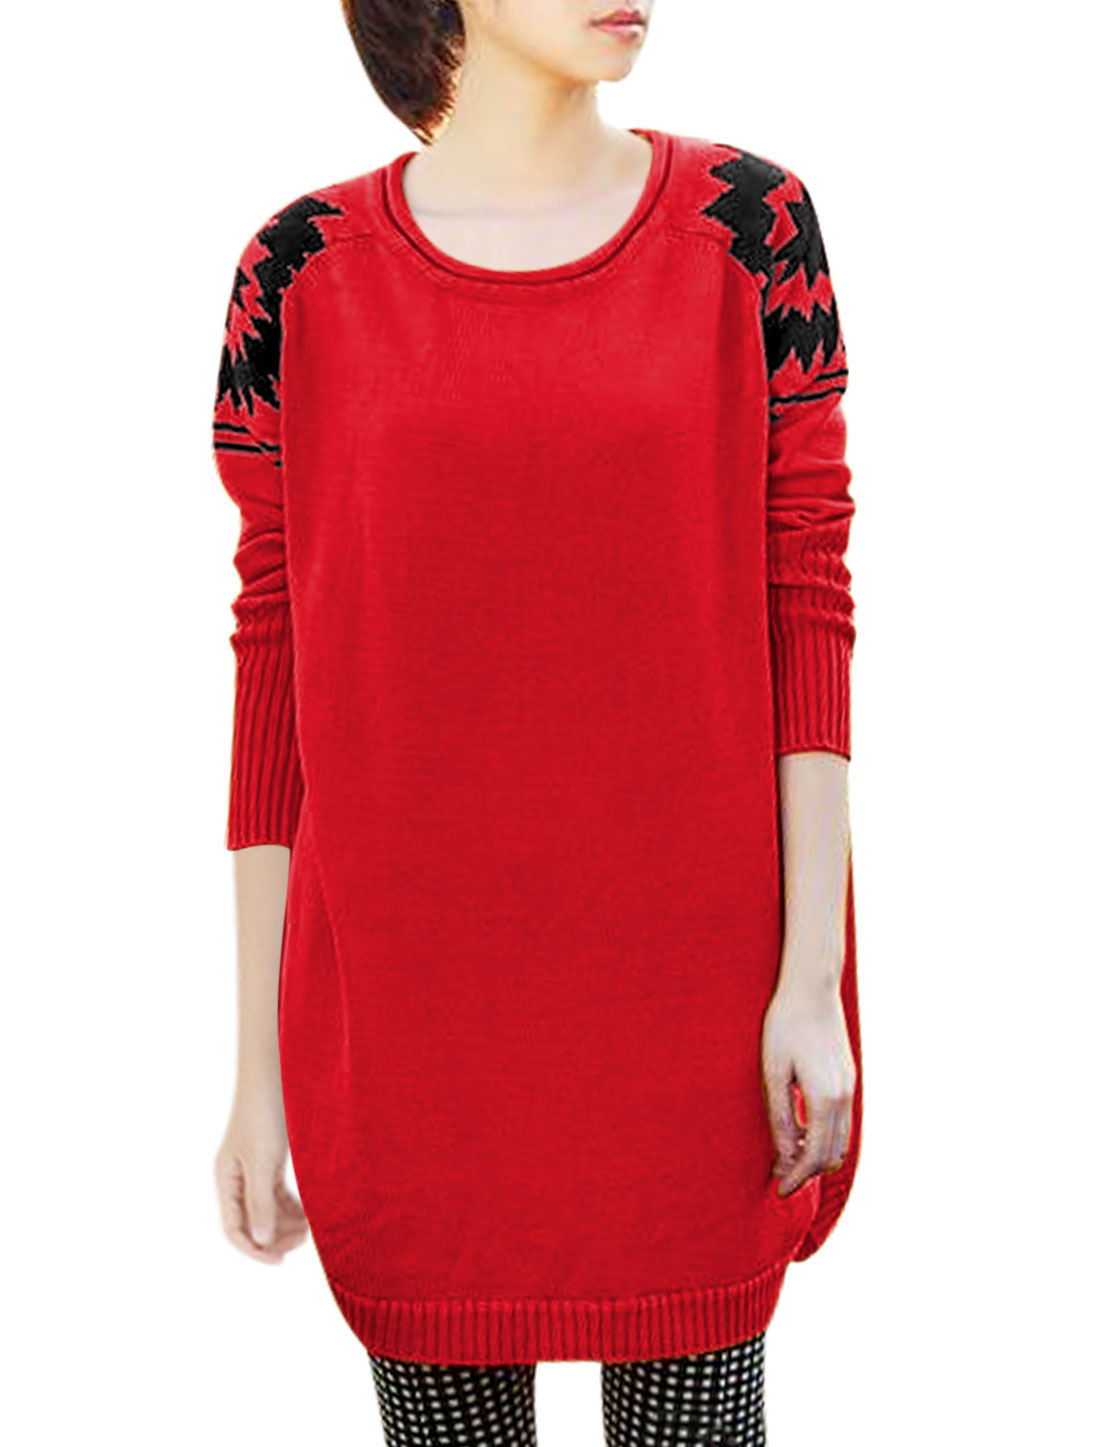 Ladies Red Round Neck Raglan Sleeves Slipover Zig-Zag Detail Sweater XS